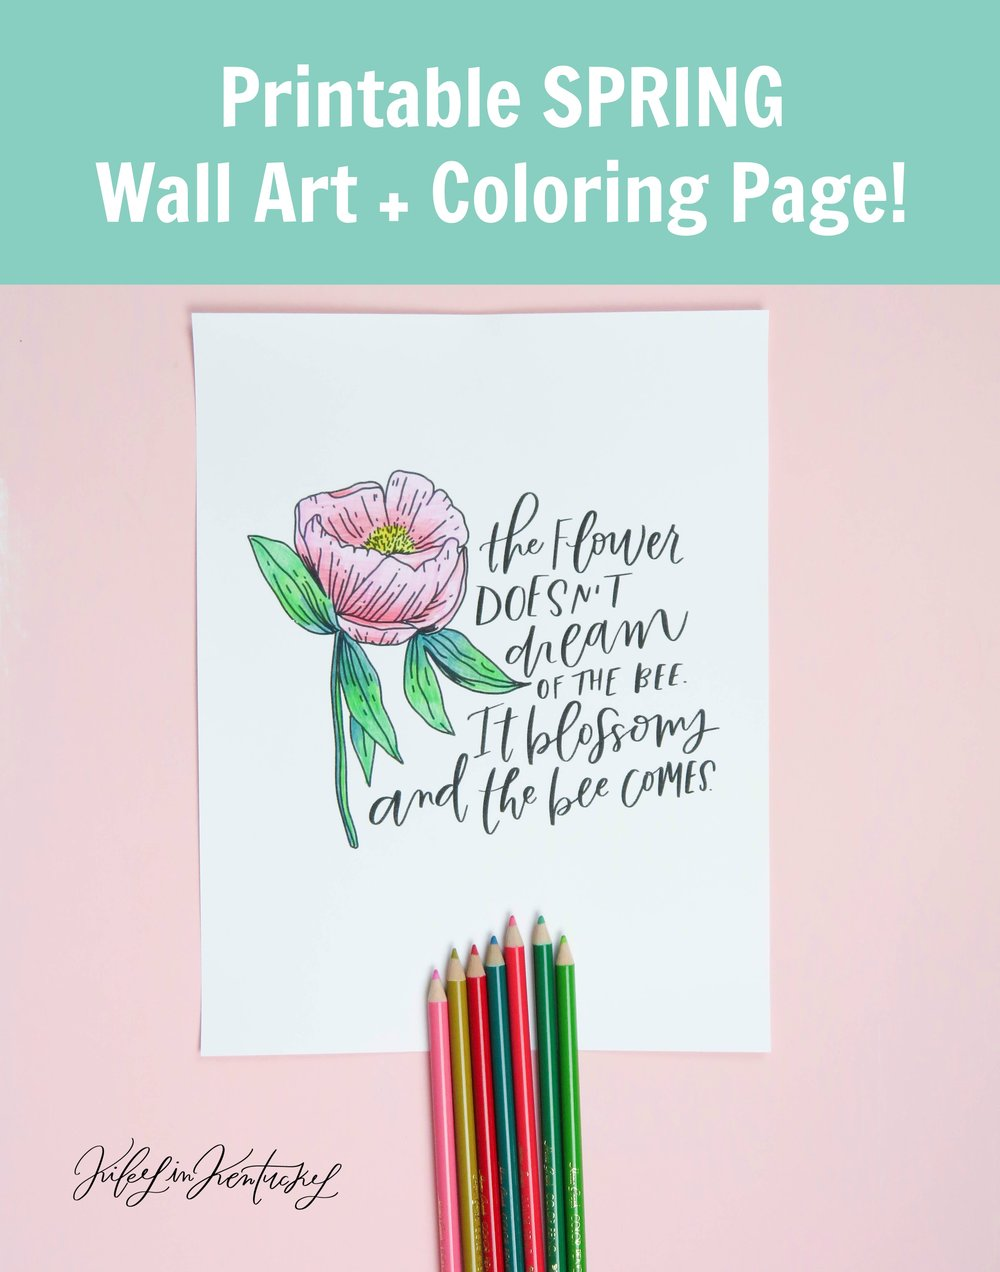 Printable Spring Wall Art and Coloring Page by Kiley in Kentucky.jpg